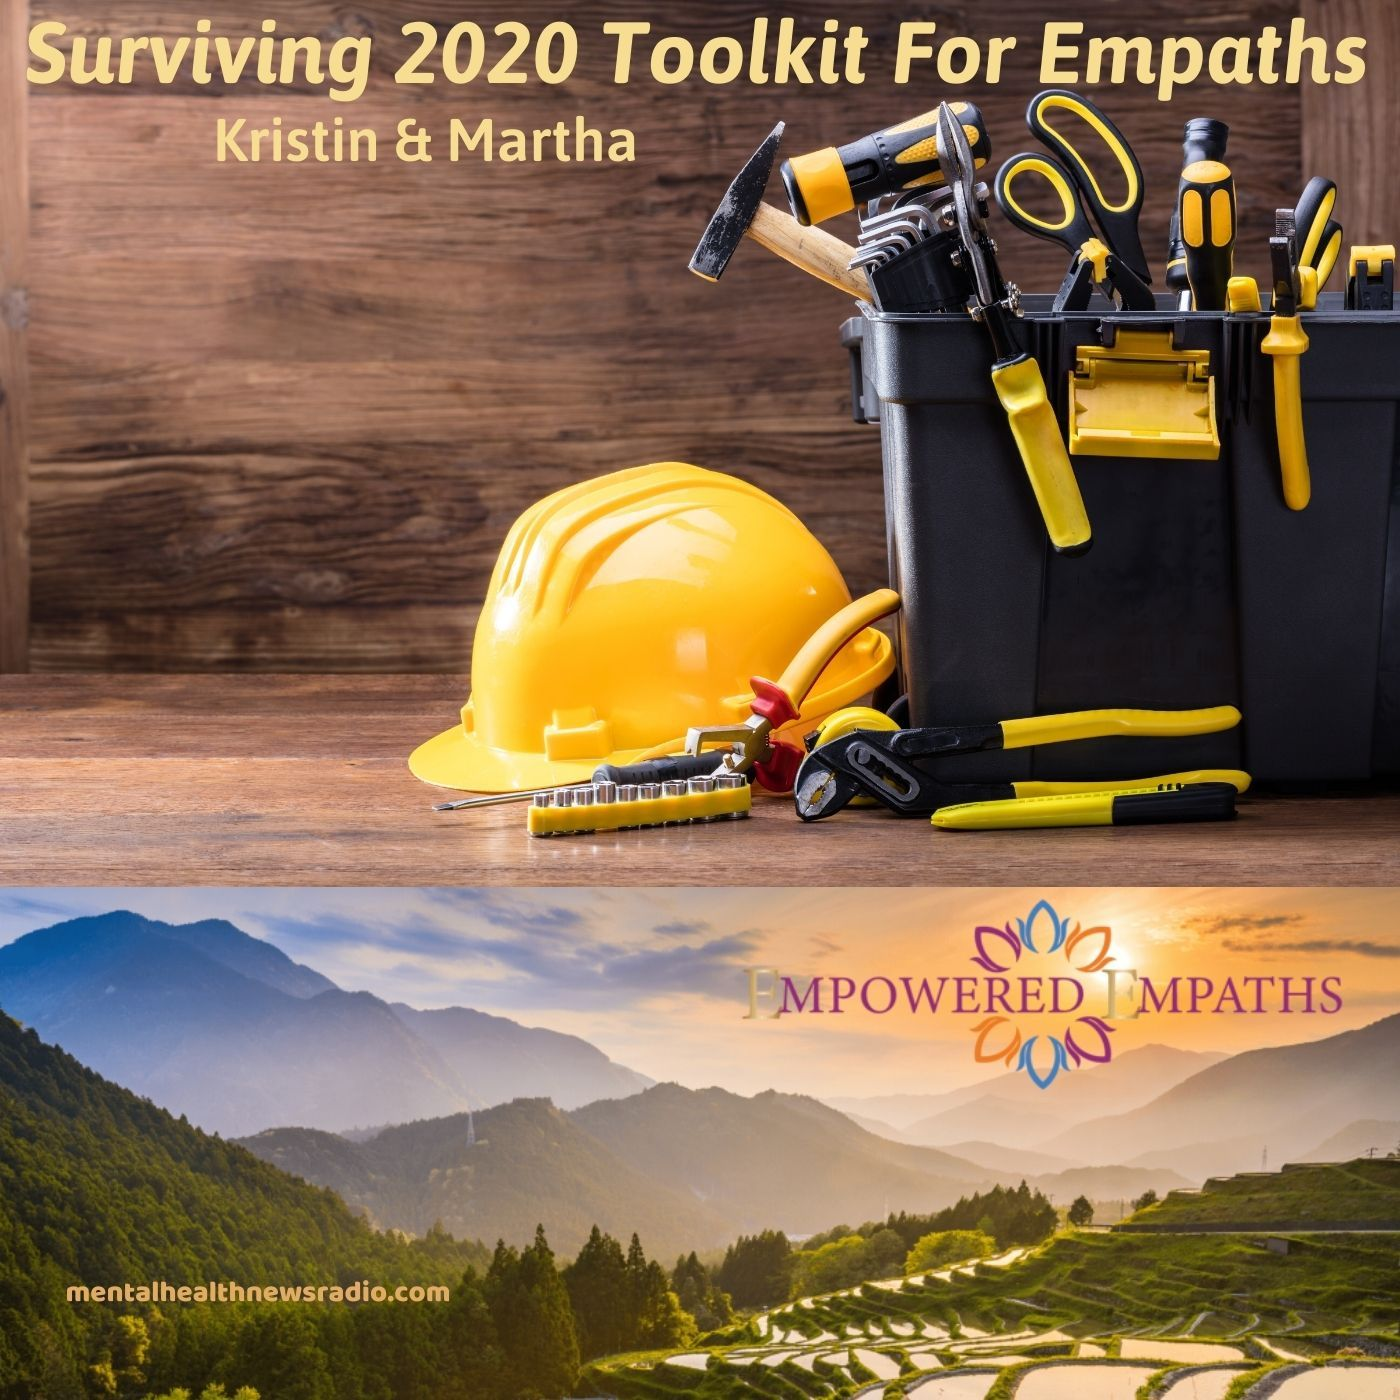 Surviving 2020 Toolkit for Empaths